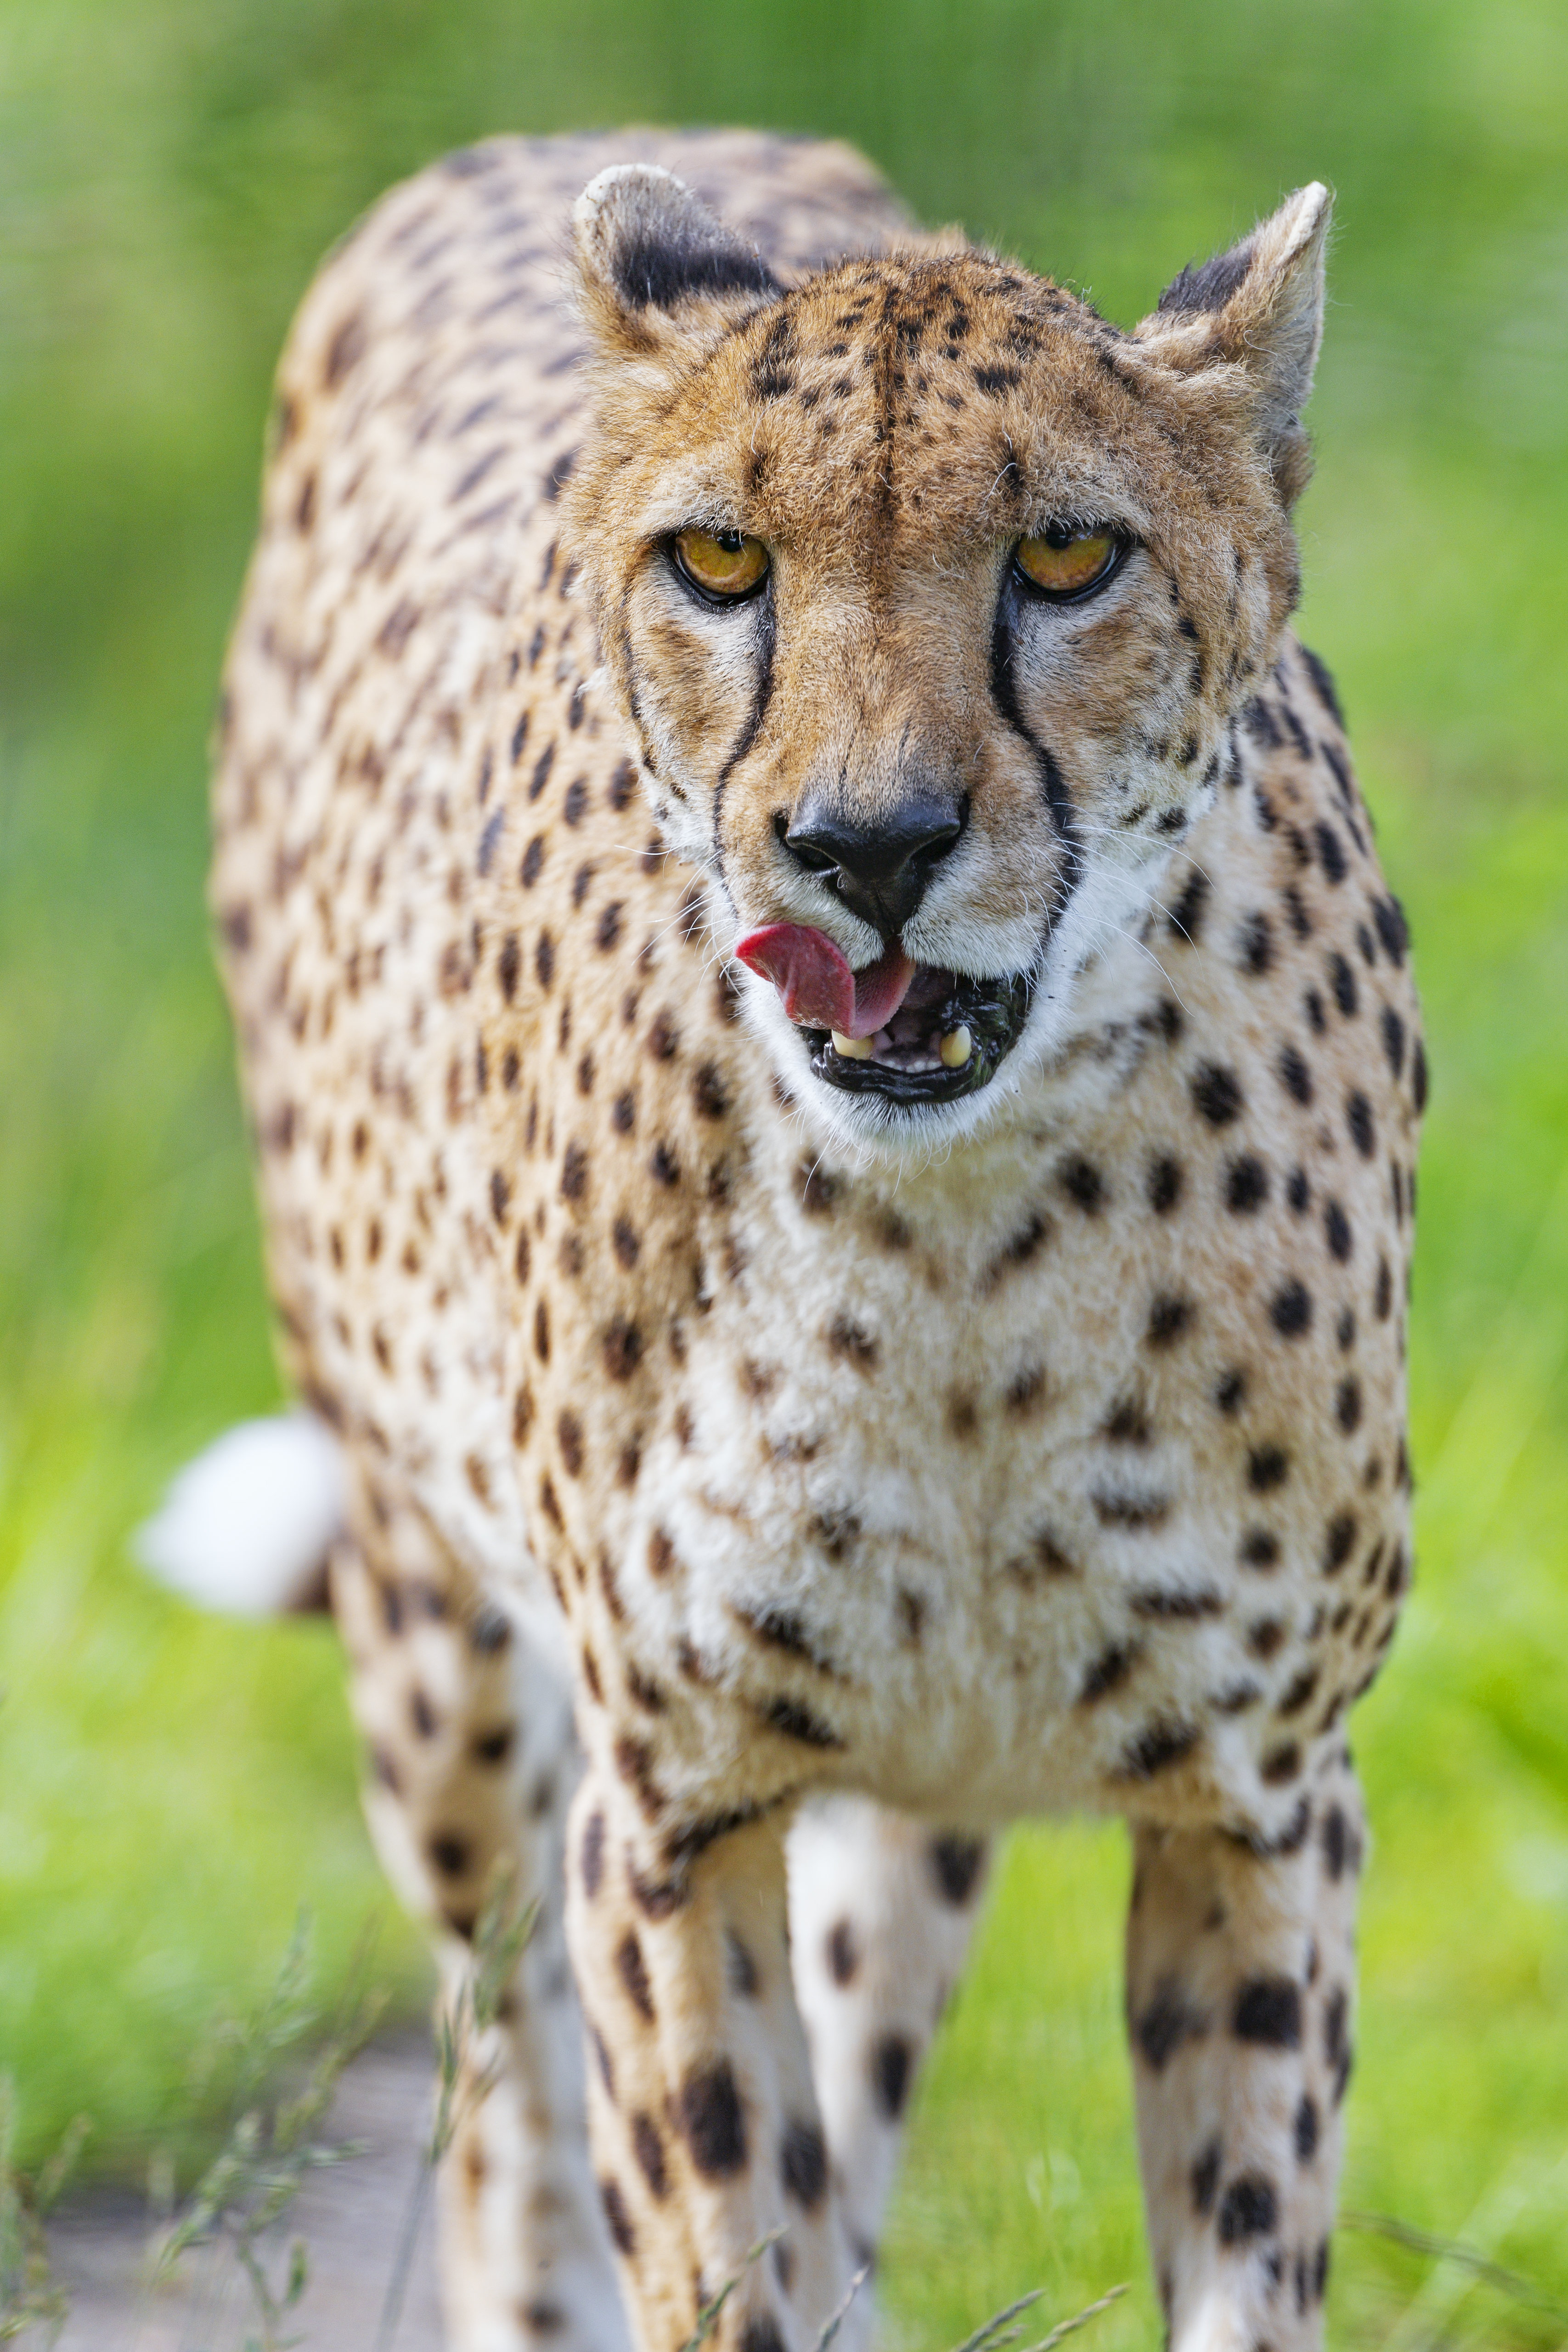 96649 download wallpaper Animals, Cheetah, Big Cat, Protruding Tongue, Tongue Stuck Out, Sight, Opinion, Predator, Stains, Spots screensavers and pictures for free